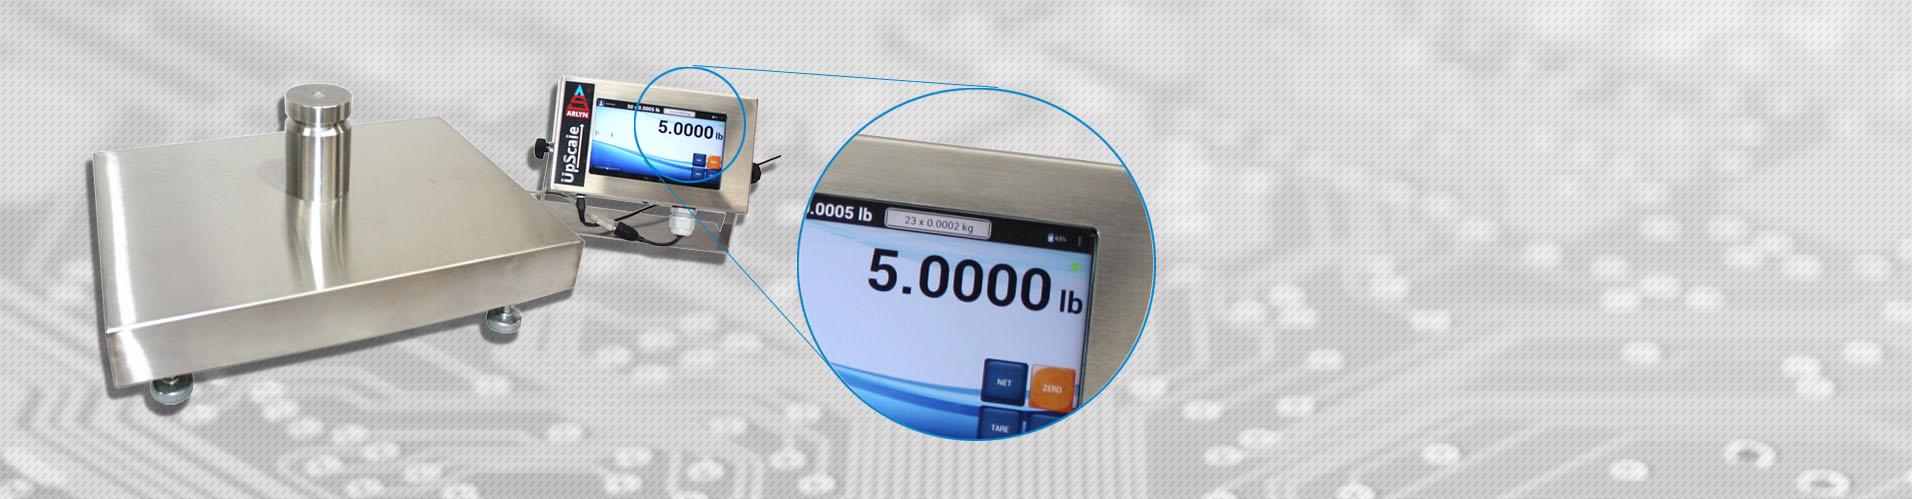 Counting Scales Designed for Durability and Accuracy